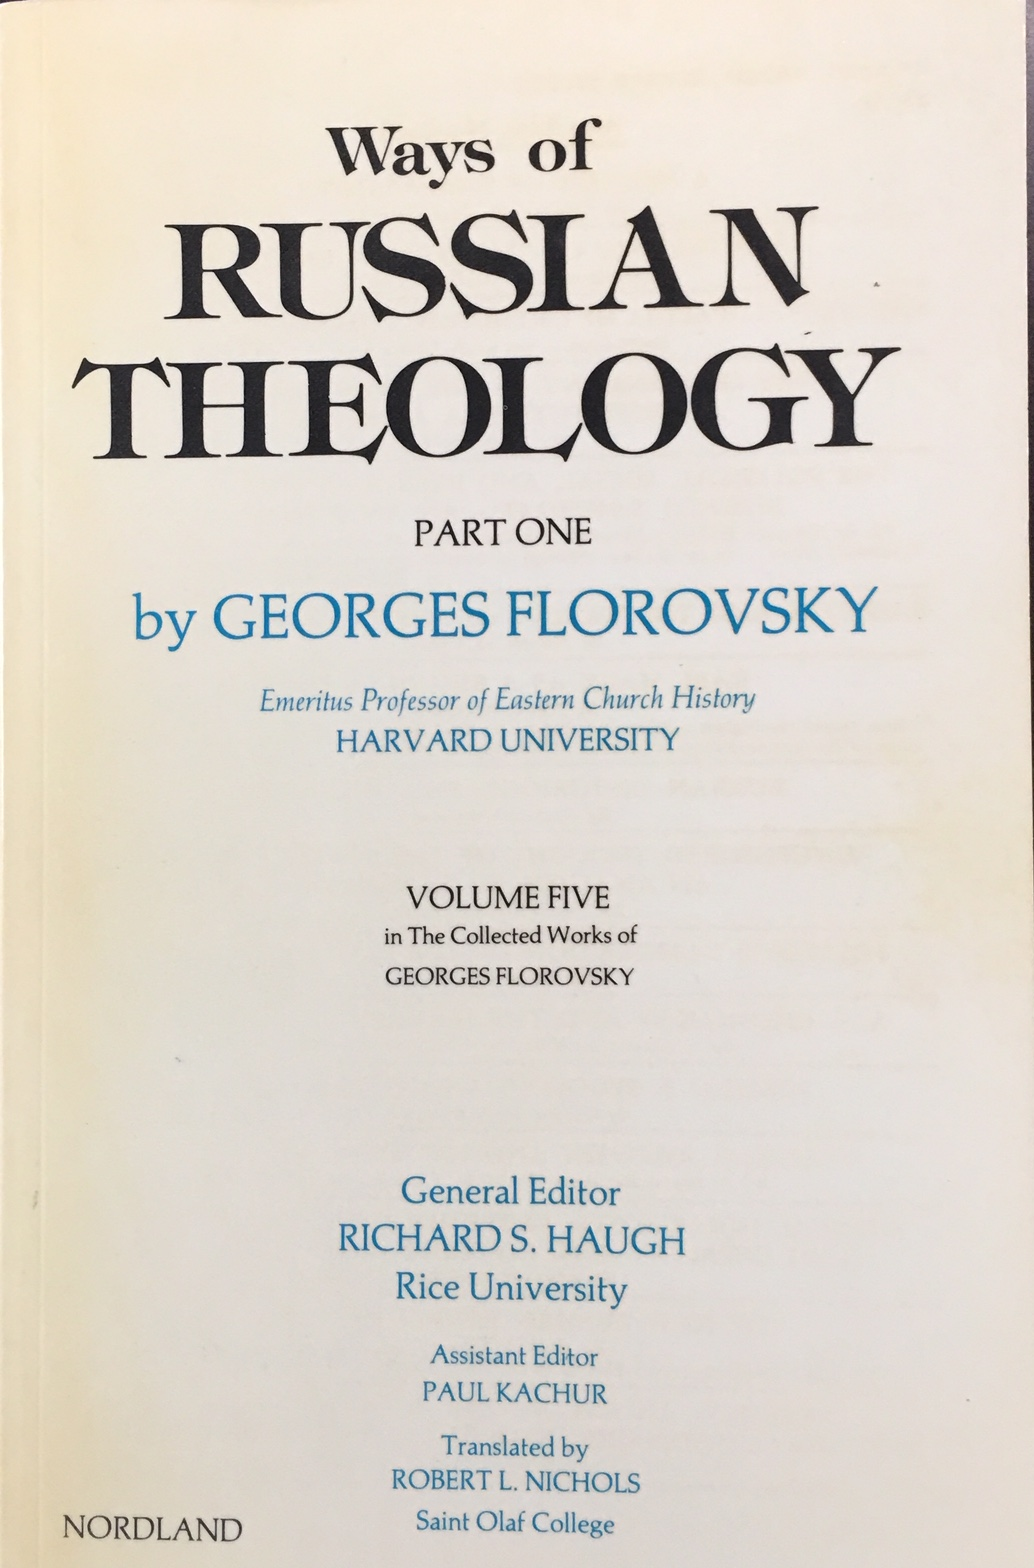 Image for Ways of Russian Theology, Part One (Collected Works of Georges Florovsky, Volume Five)